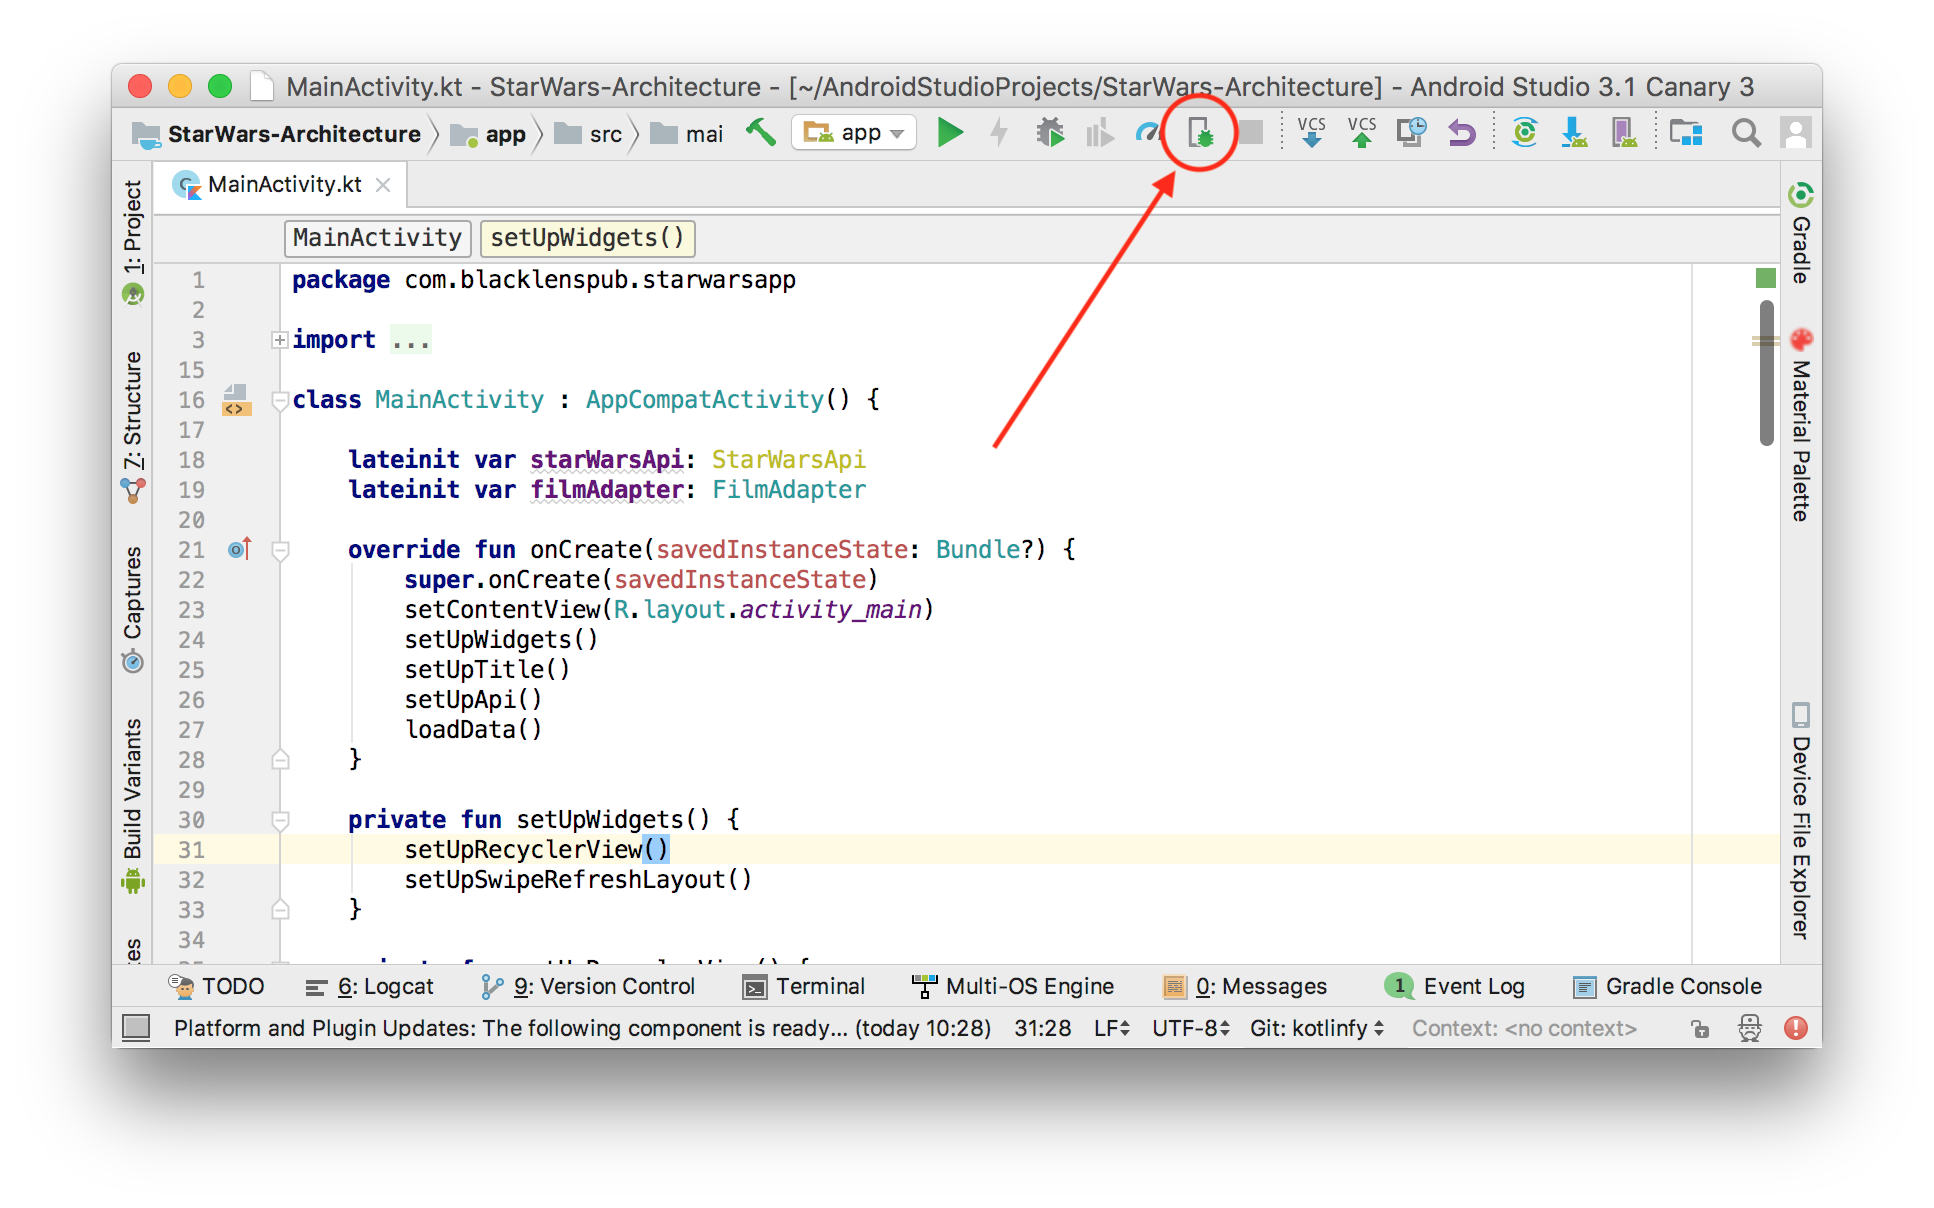 Debugging in android studio